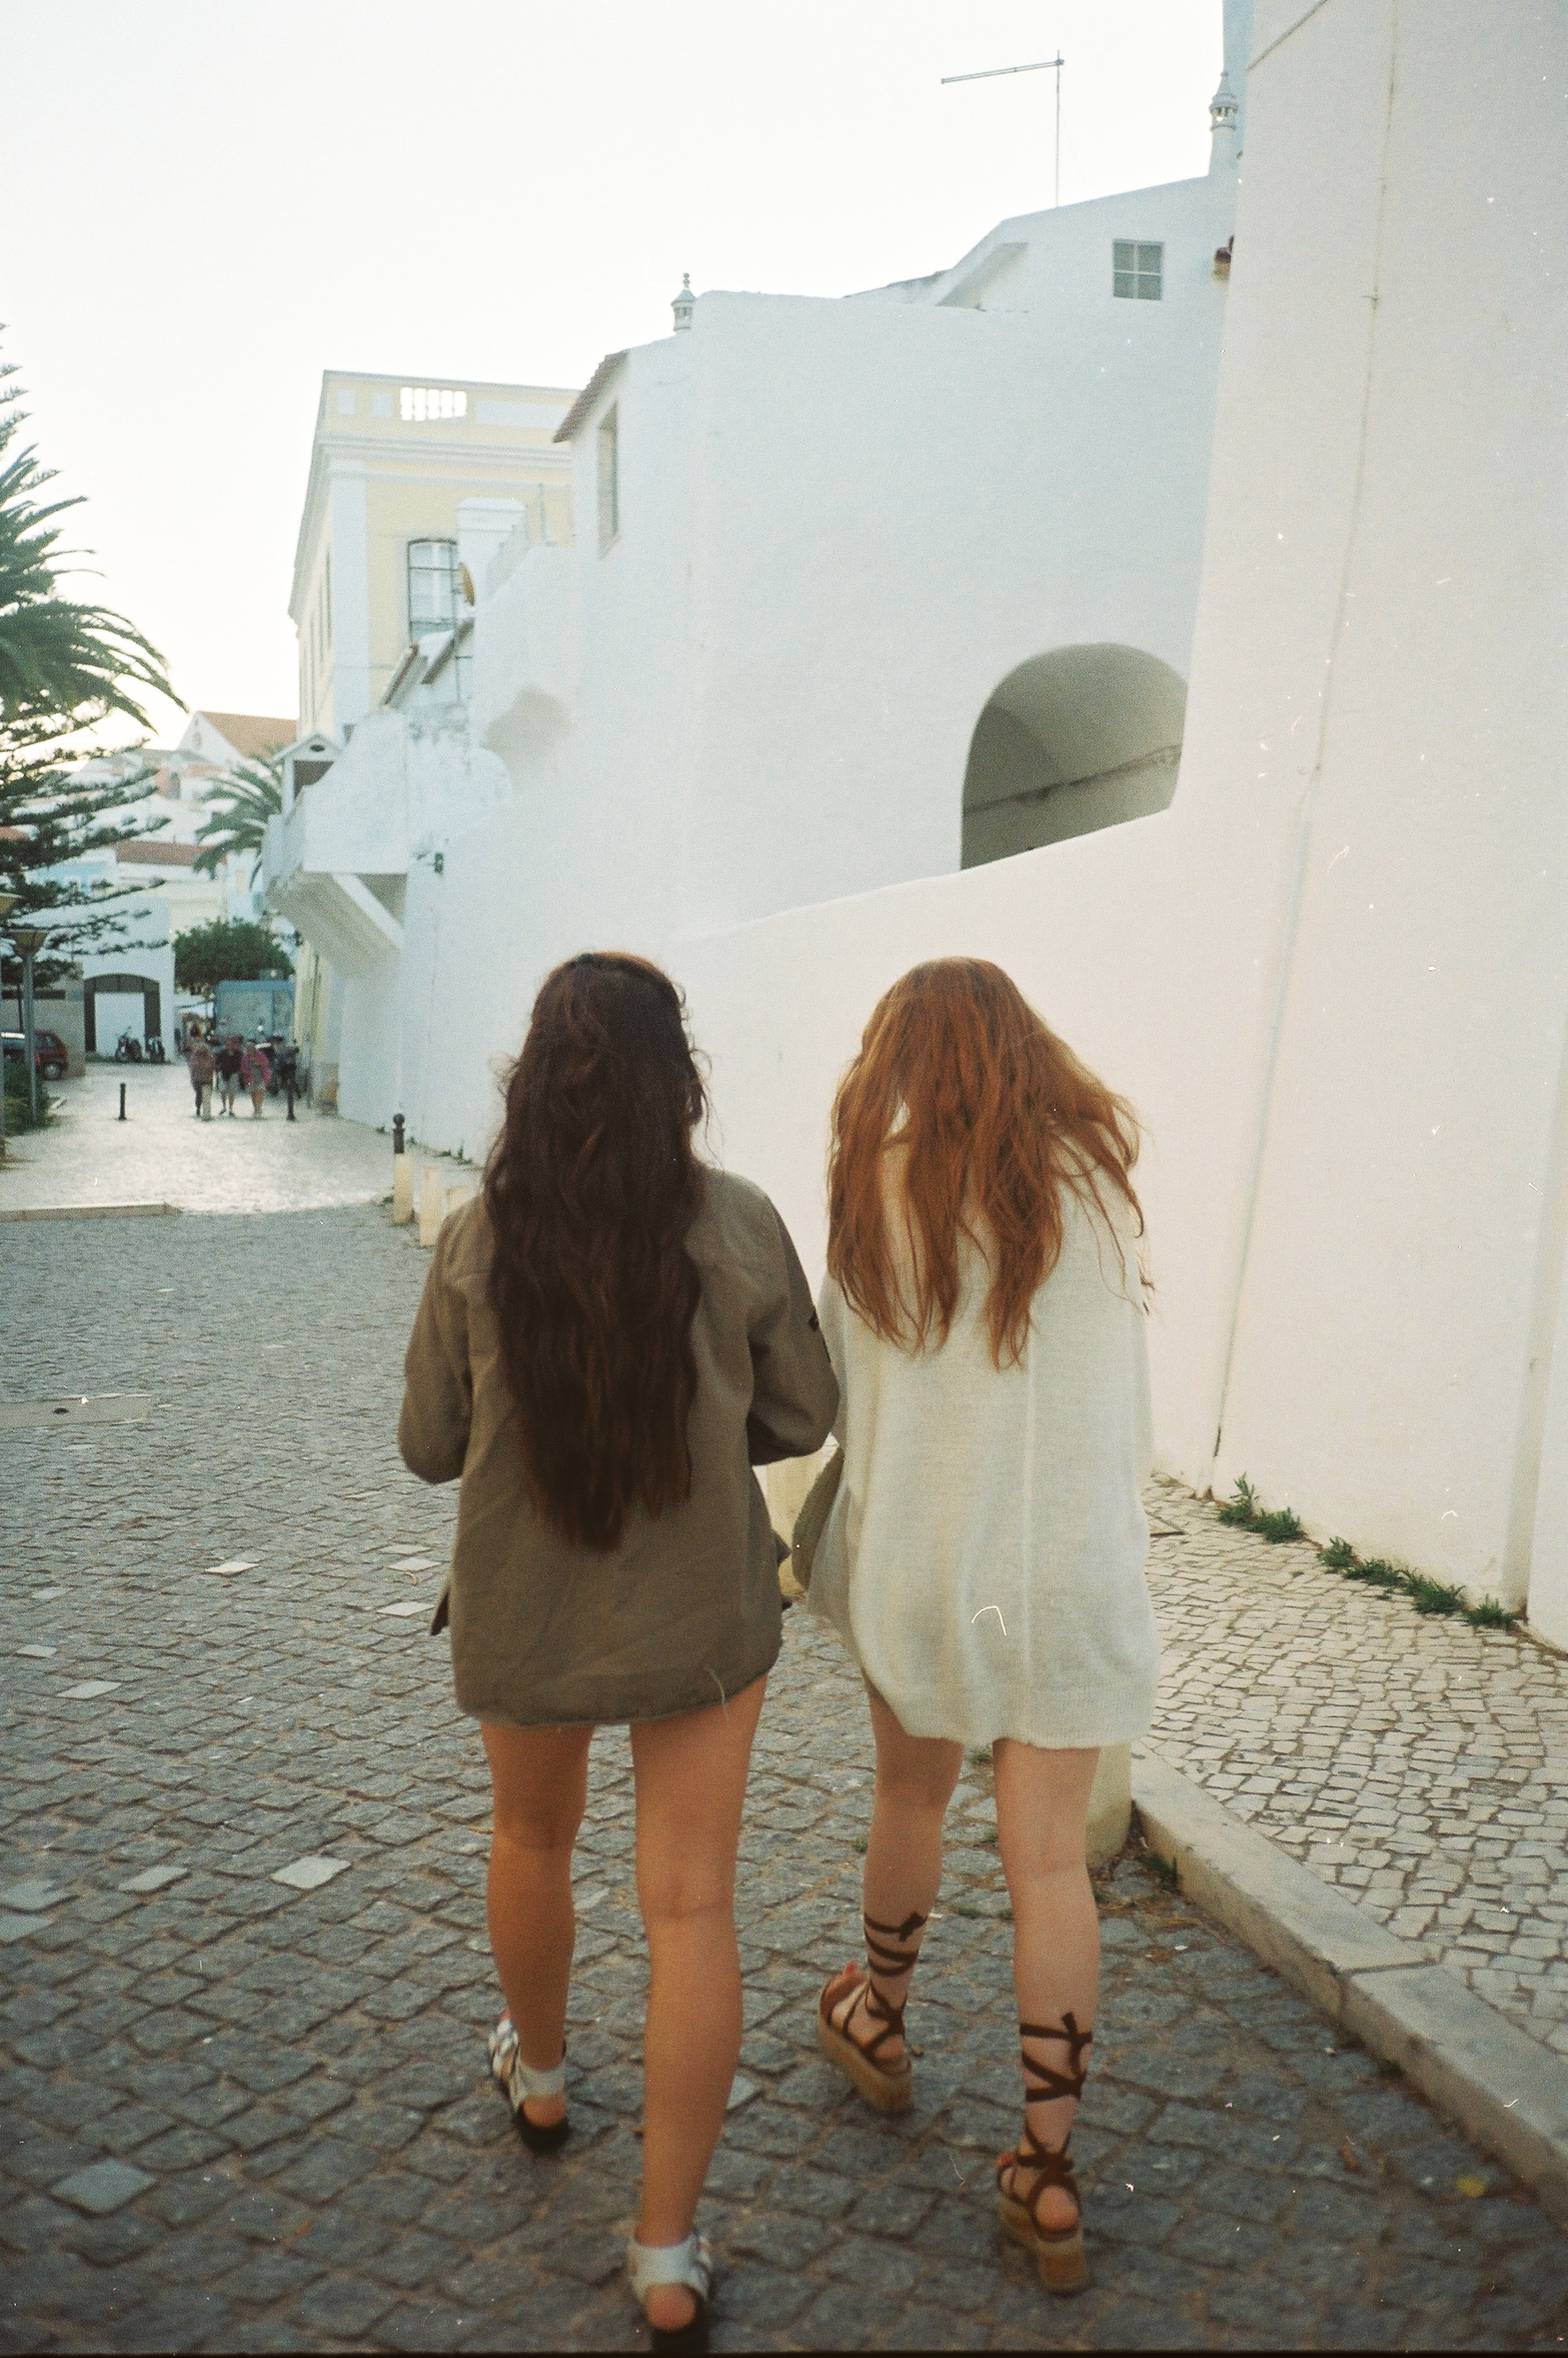 a-girls-trip-to-portugal-on-35mm-film30.jpg